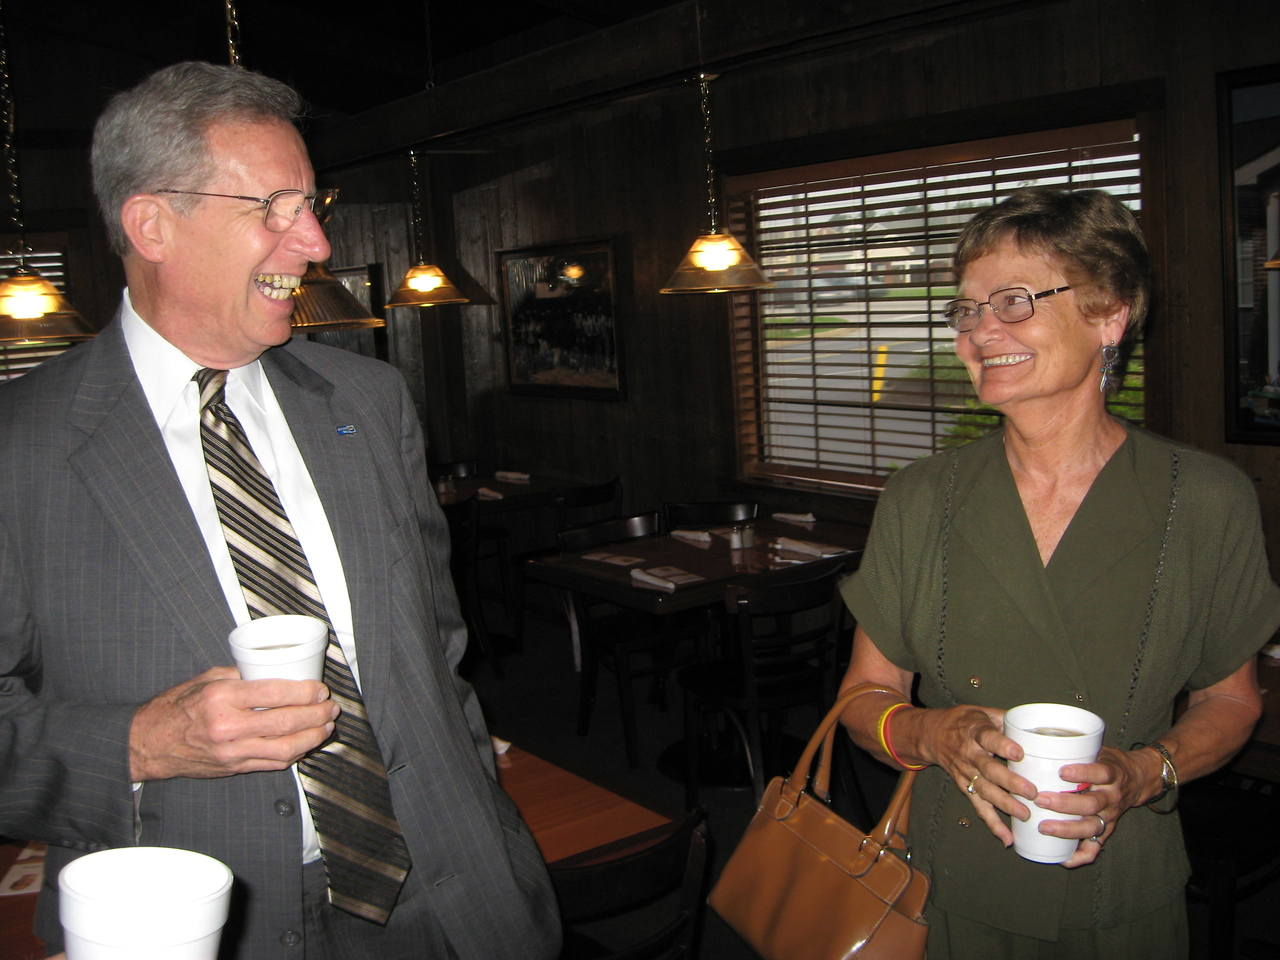 United Way CEO, Charlie Colvin - guest speaker for the day, talking to guest Linda Wilson, beautiful wife of member George Wilson